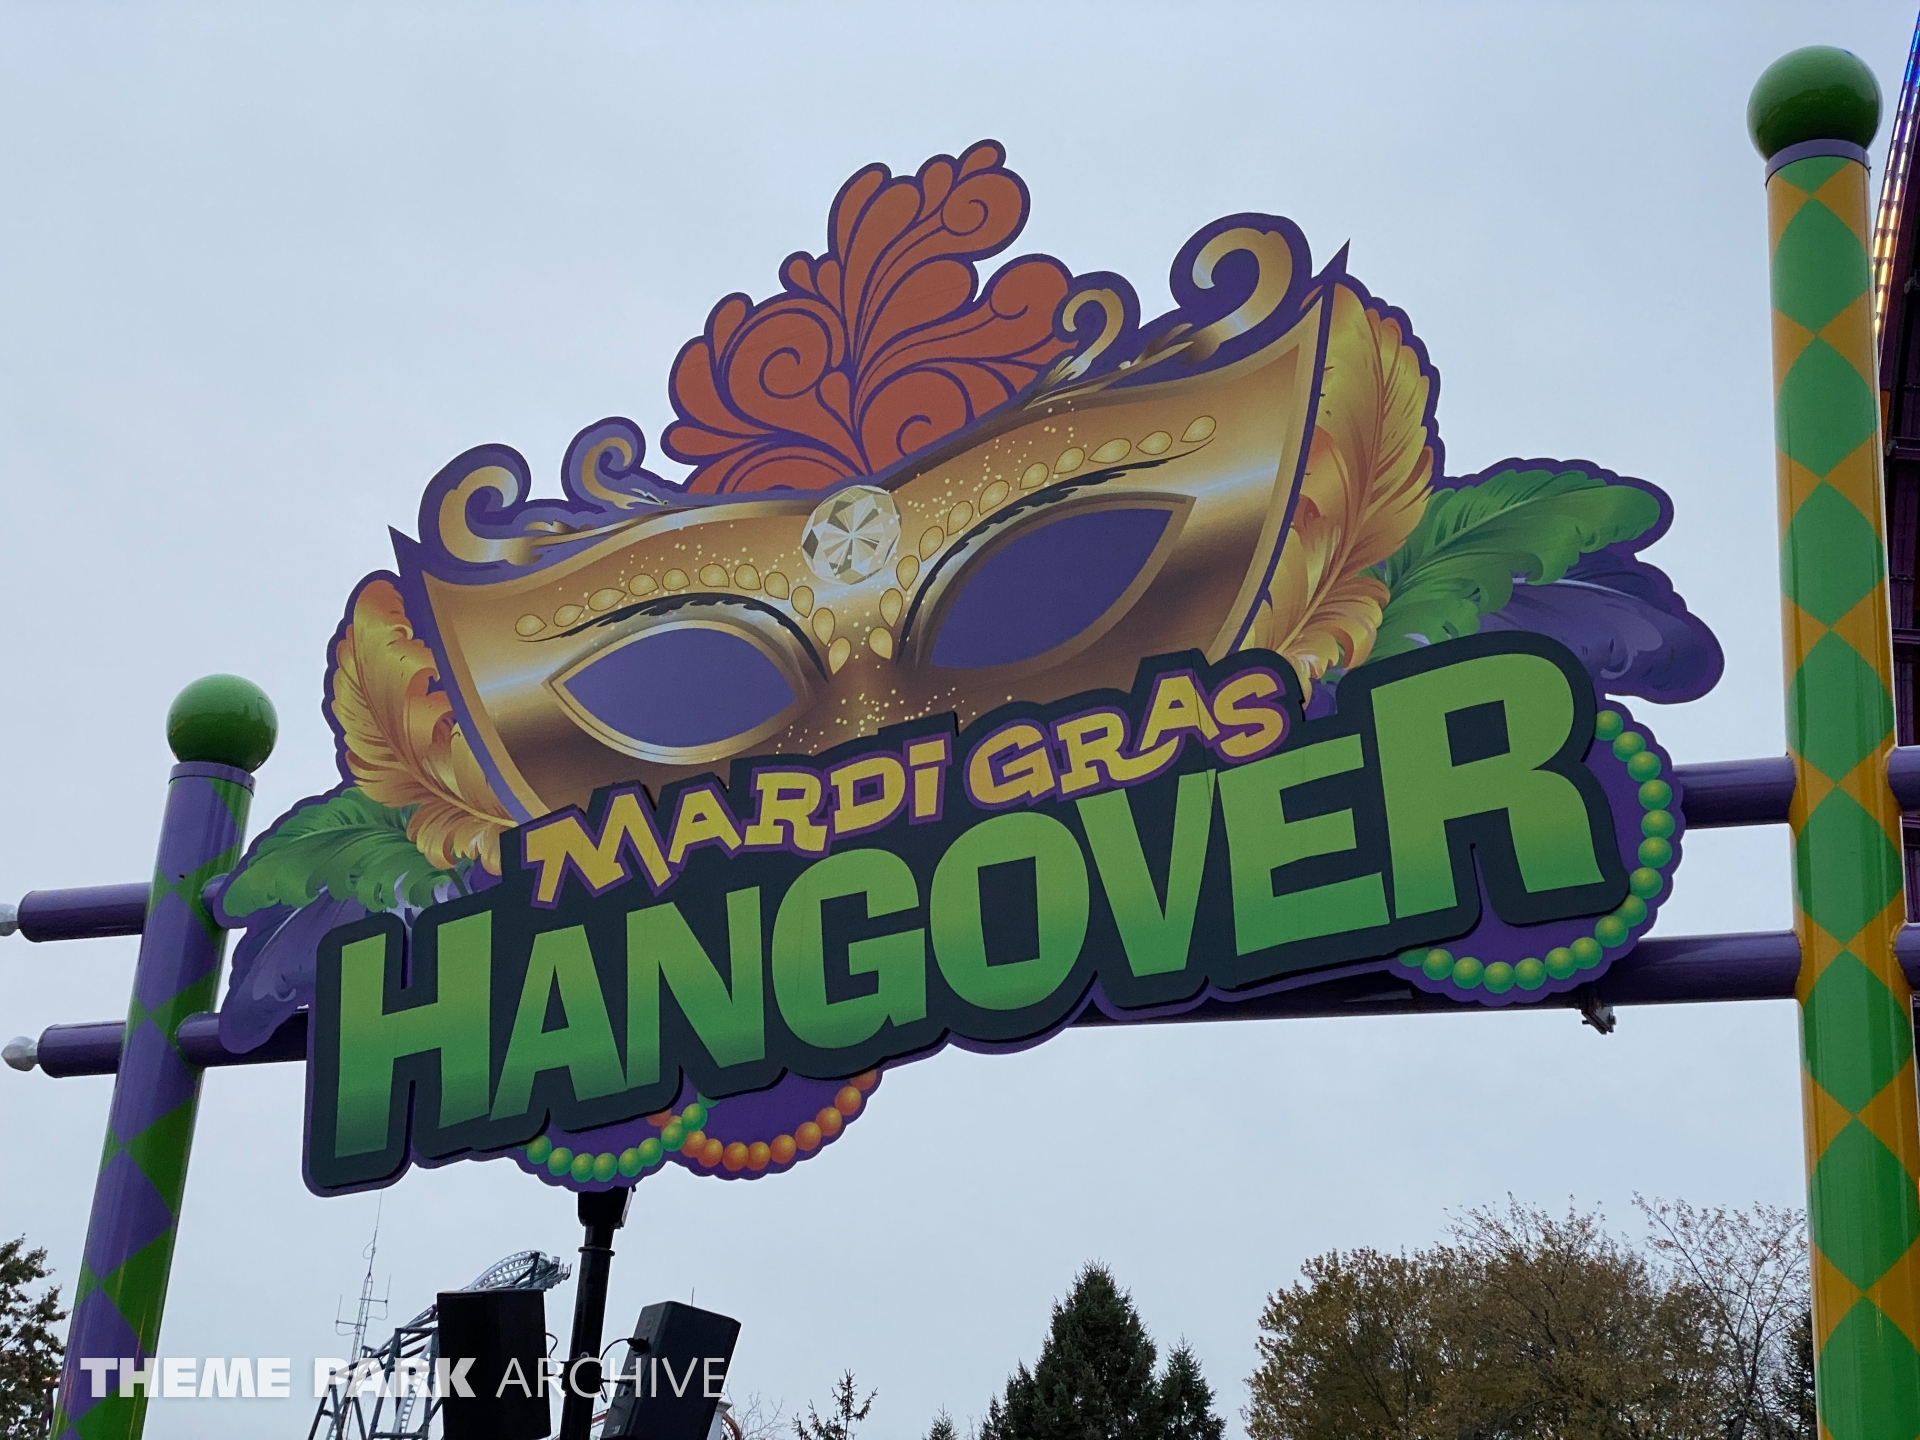 Mardi Gras Hangover at Six Flags Great America